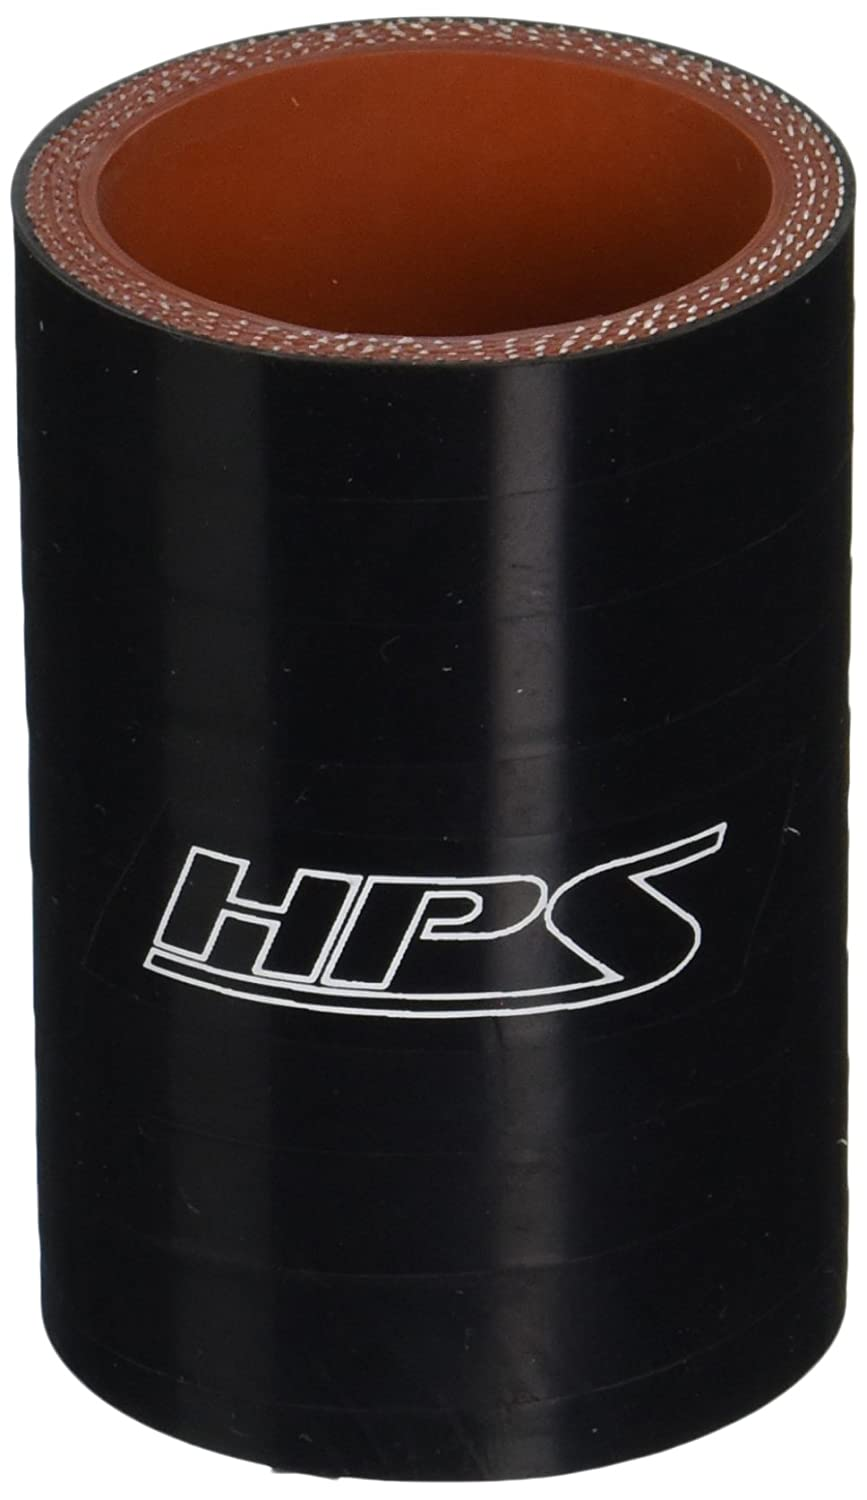 HPS Silicone Hoses HTSC-162-BLK Silicone High Temperature 4-Ply Reinforced Straight Coupler Hose, 100 PSI Maximum Pressure, 3' Length, 1-5/8' ID, Black 3 Length 1-5/8 ID